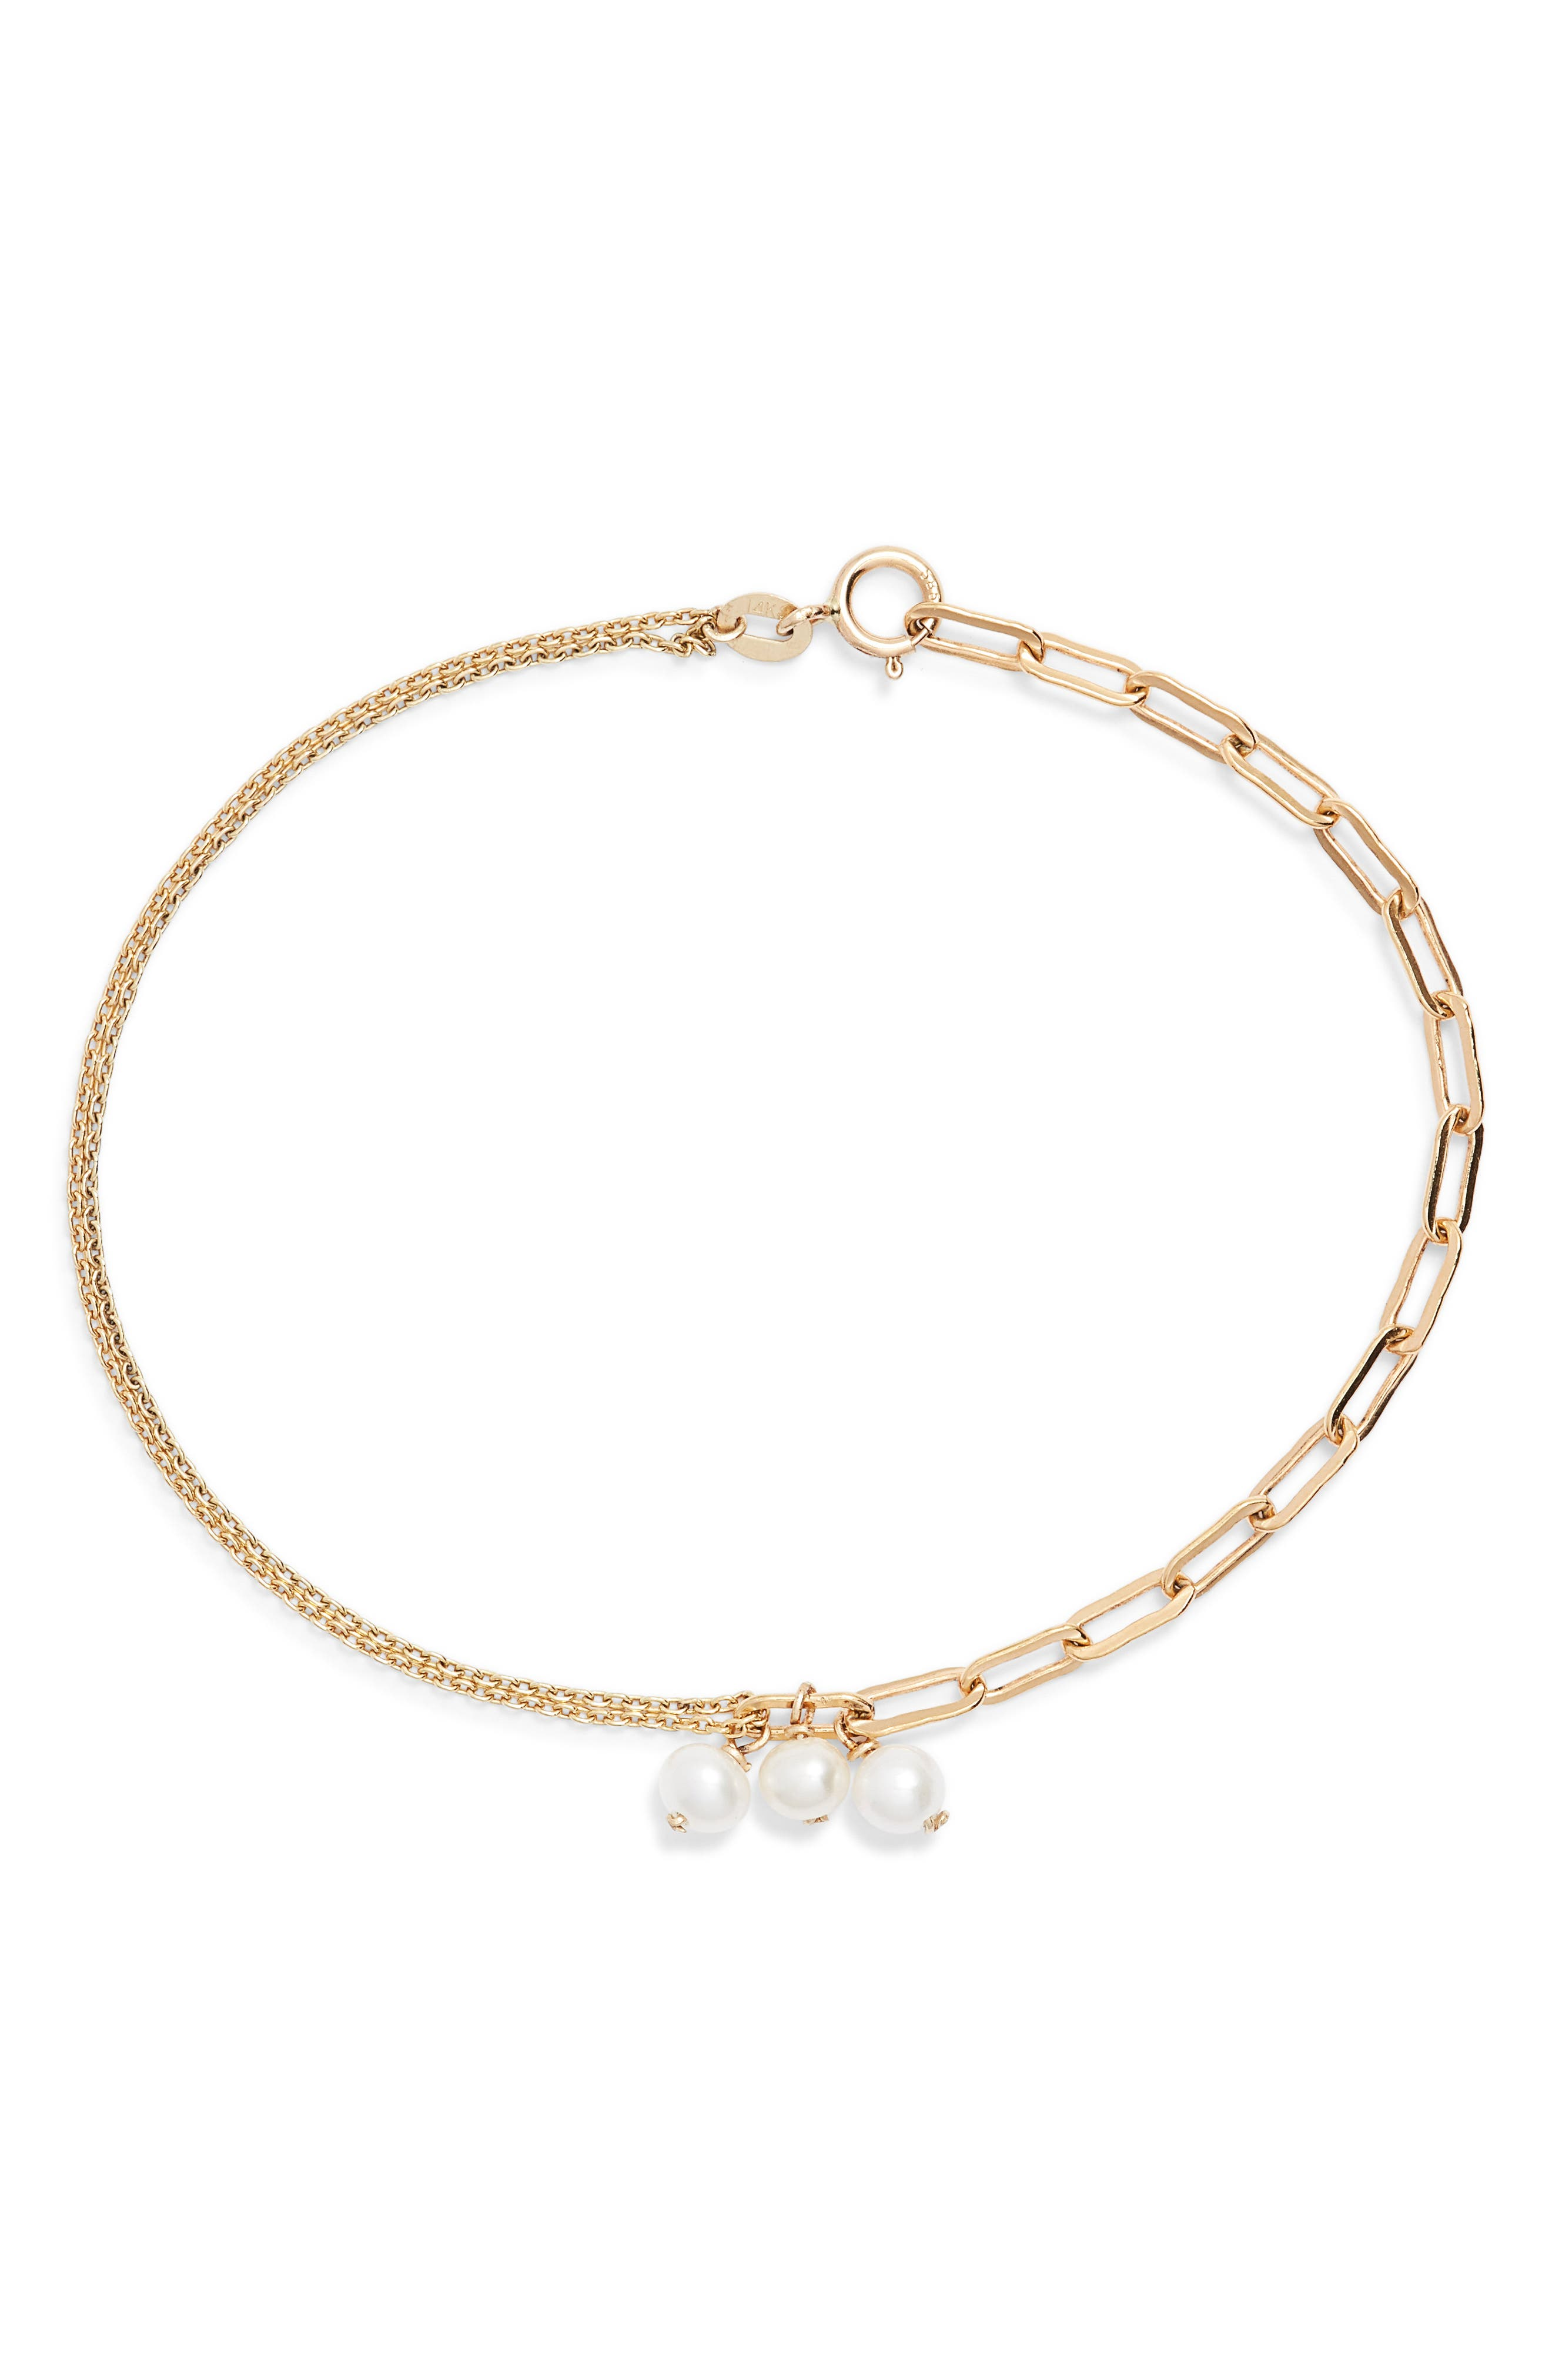 POPPY FINCH Pearl Bracelet, Main, color, YELLOW GOLD/ PEARL